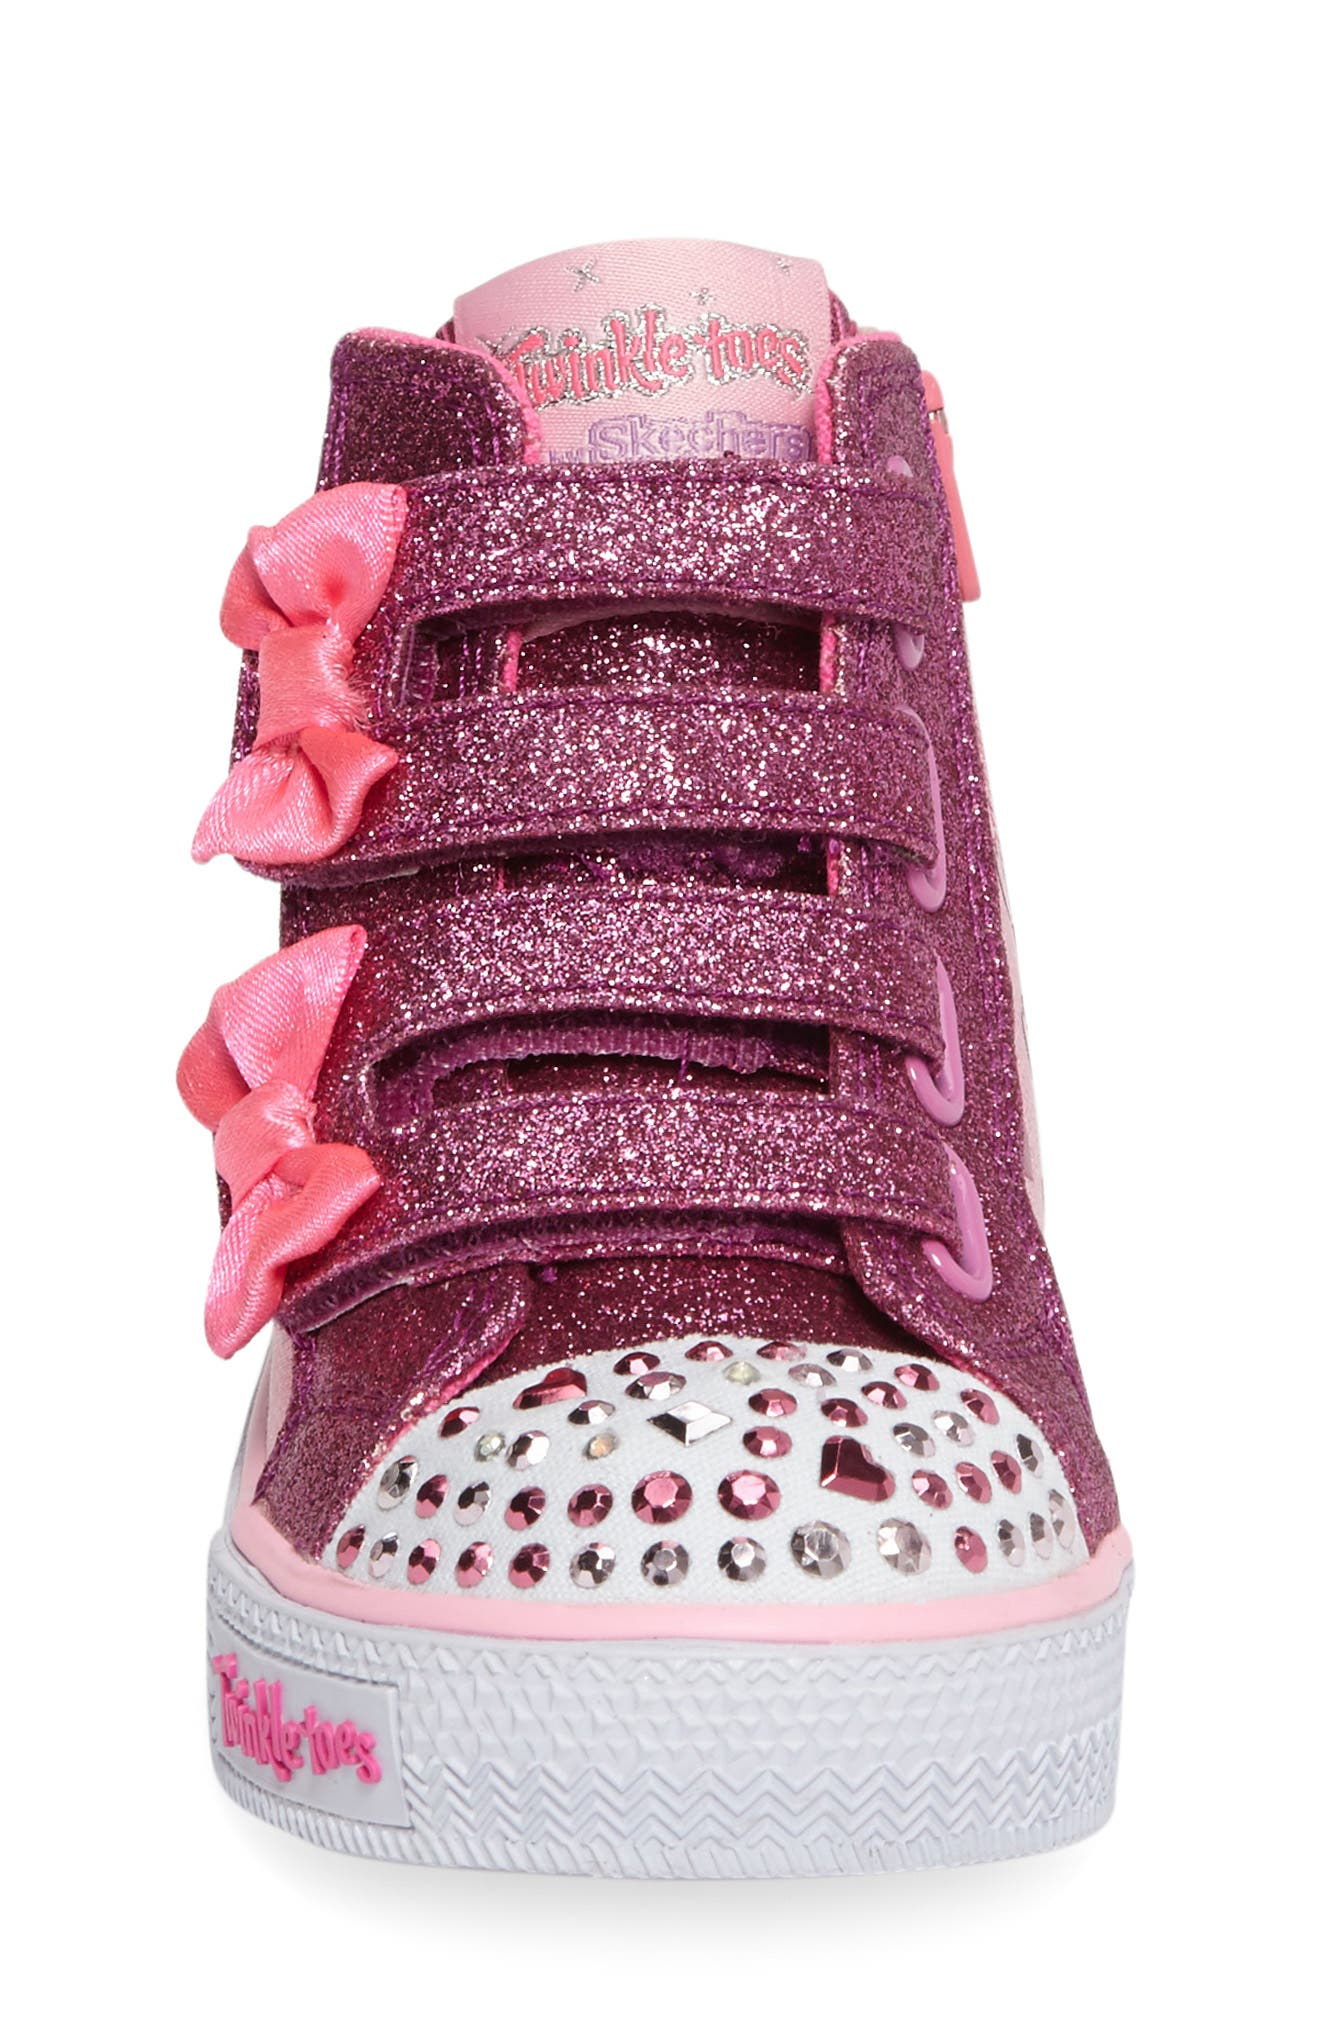 'Twinkle Toes - Shuffles' High Top Sneaker,                             Alternate thumbnail 3, color,                             Pink/ Hot Pink